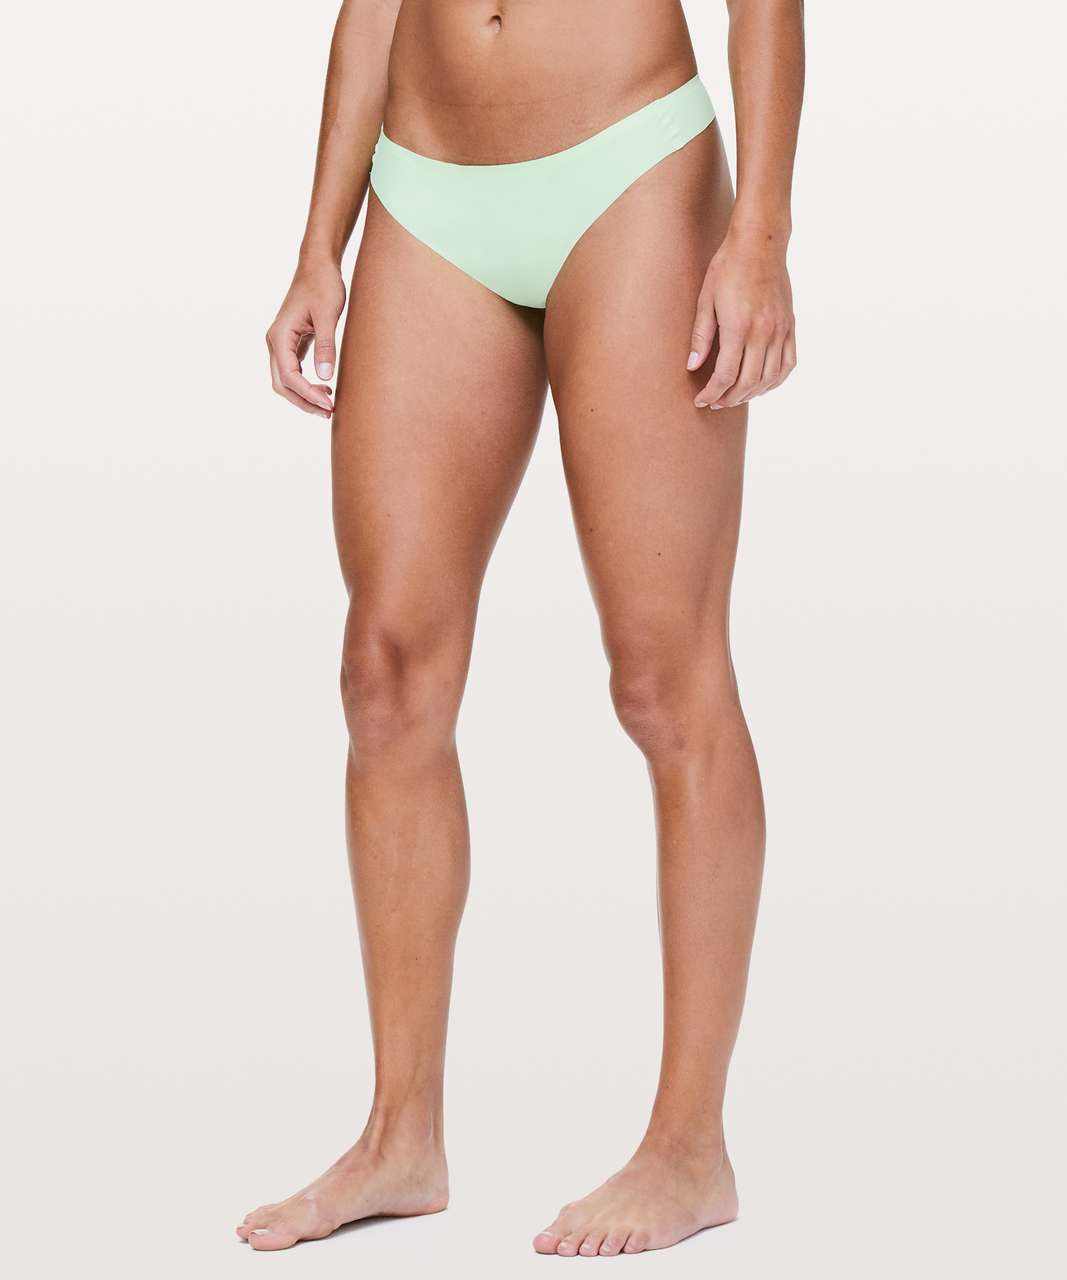 Lululemon Namastay Put Thong II - Citra Lime